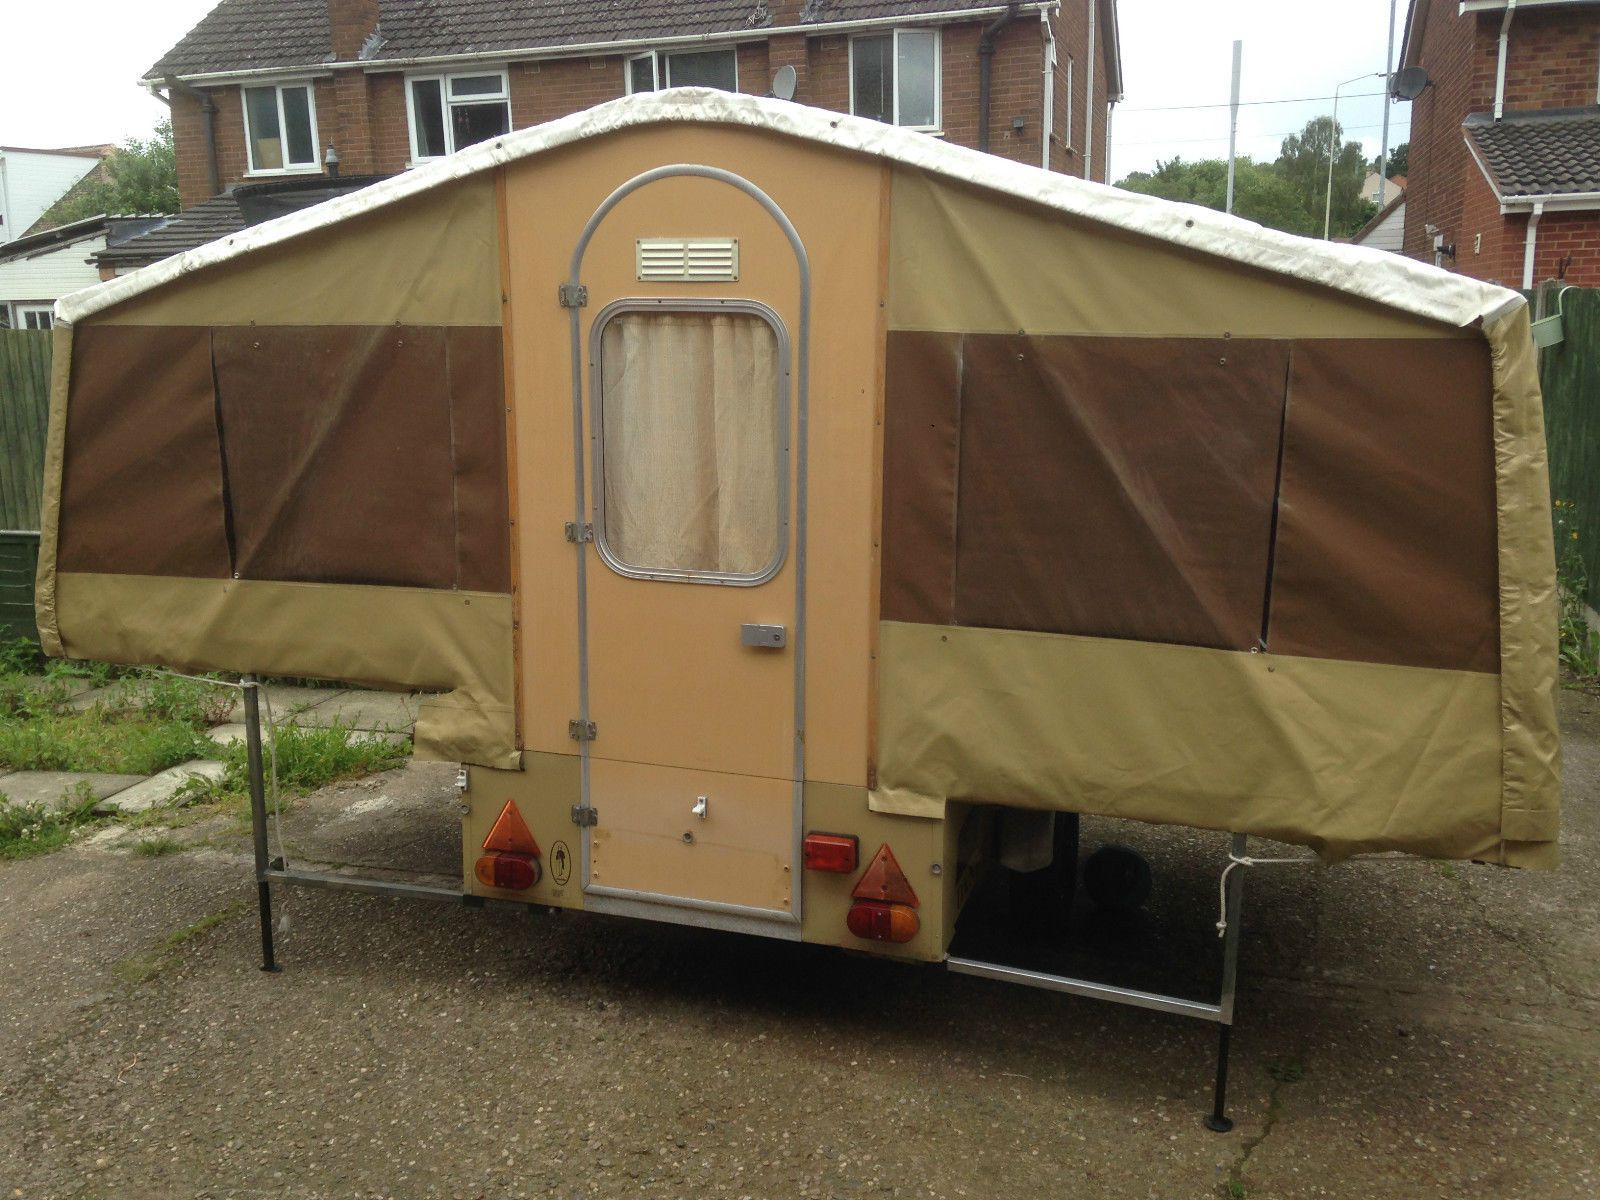 Superb dandy trailer tent 1970 s retro large awning new tyres folding carava